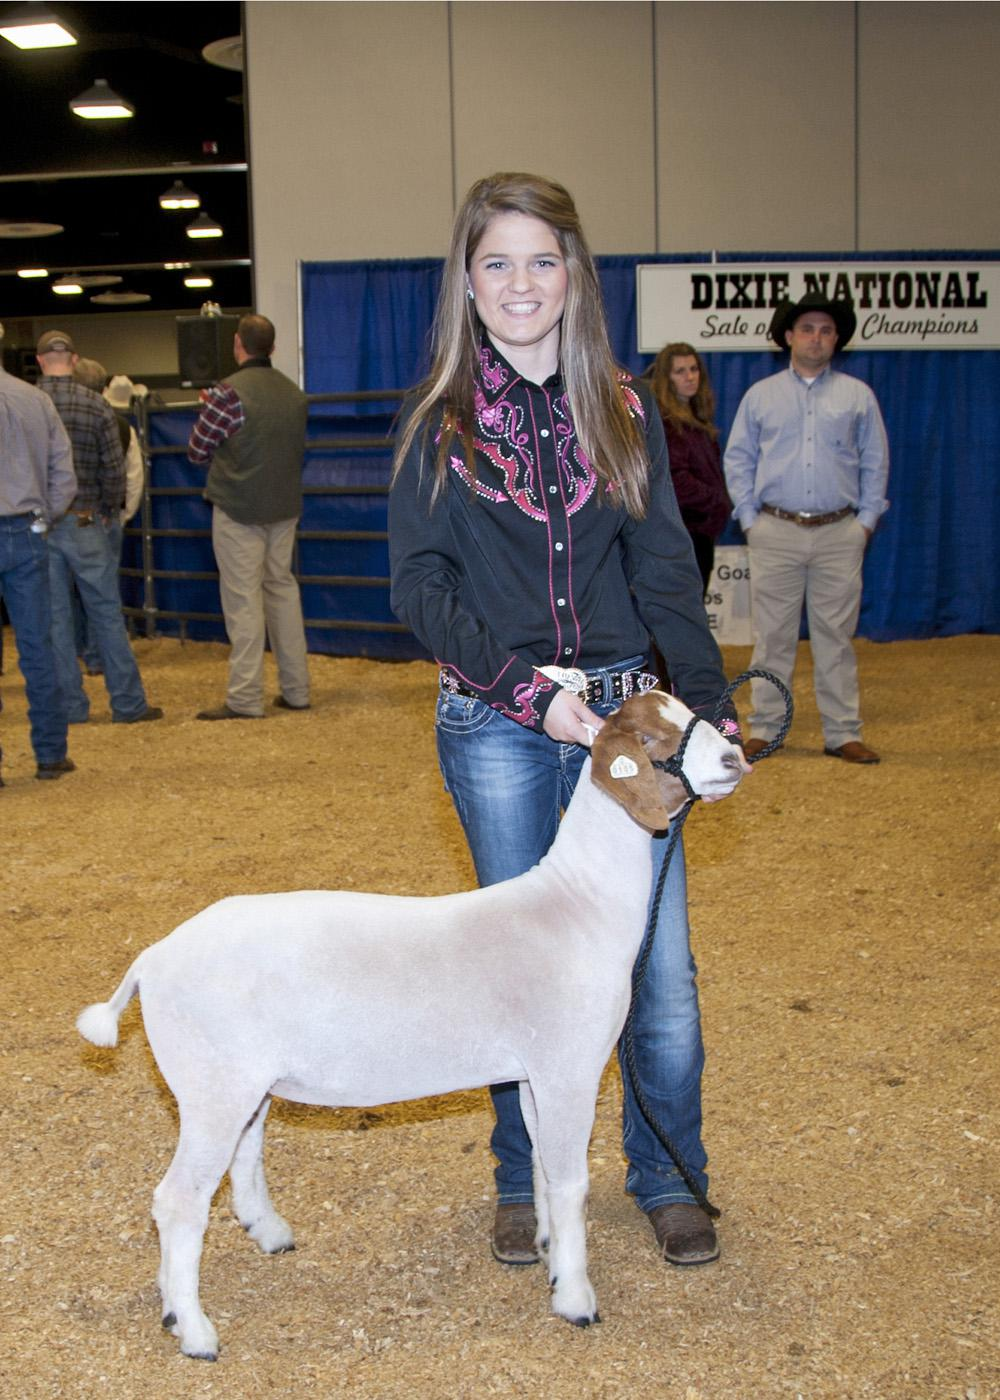 Alexandra Pittman of Forrest County 4-H set a record with her reserve champion medium weight goat, which brought $100 per pound. (Photo by Kat Lawrence)